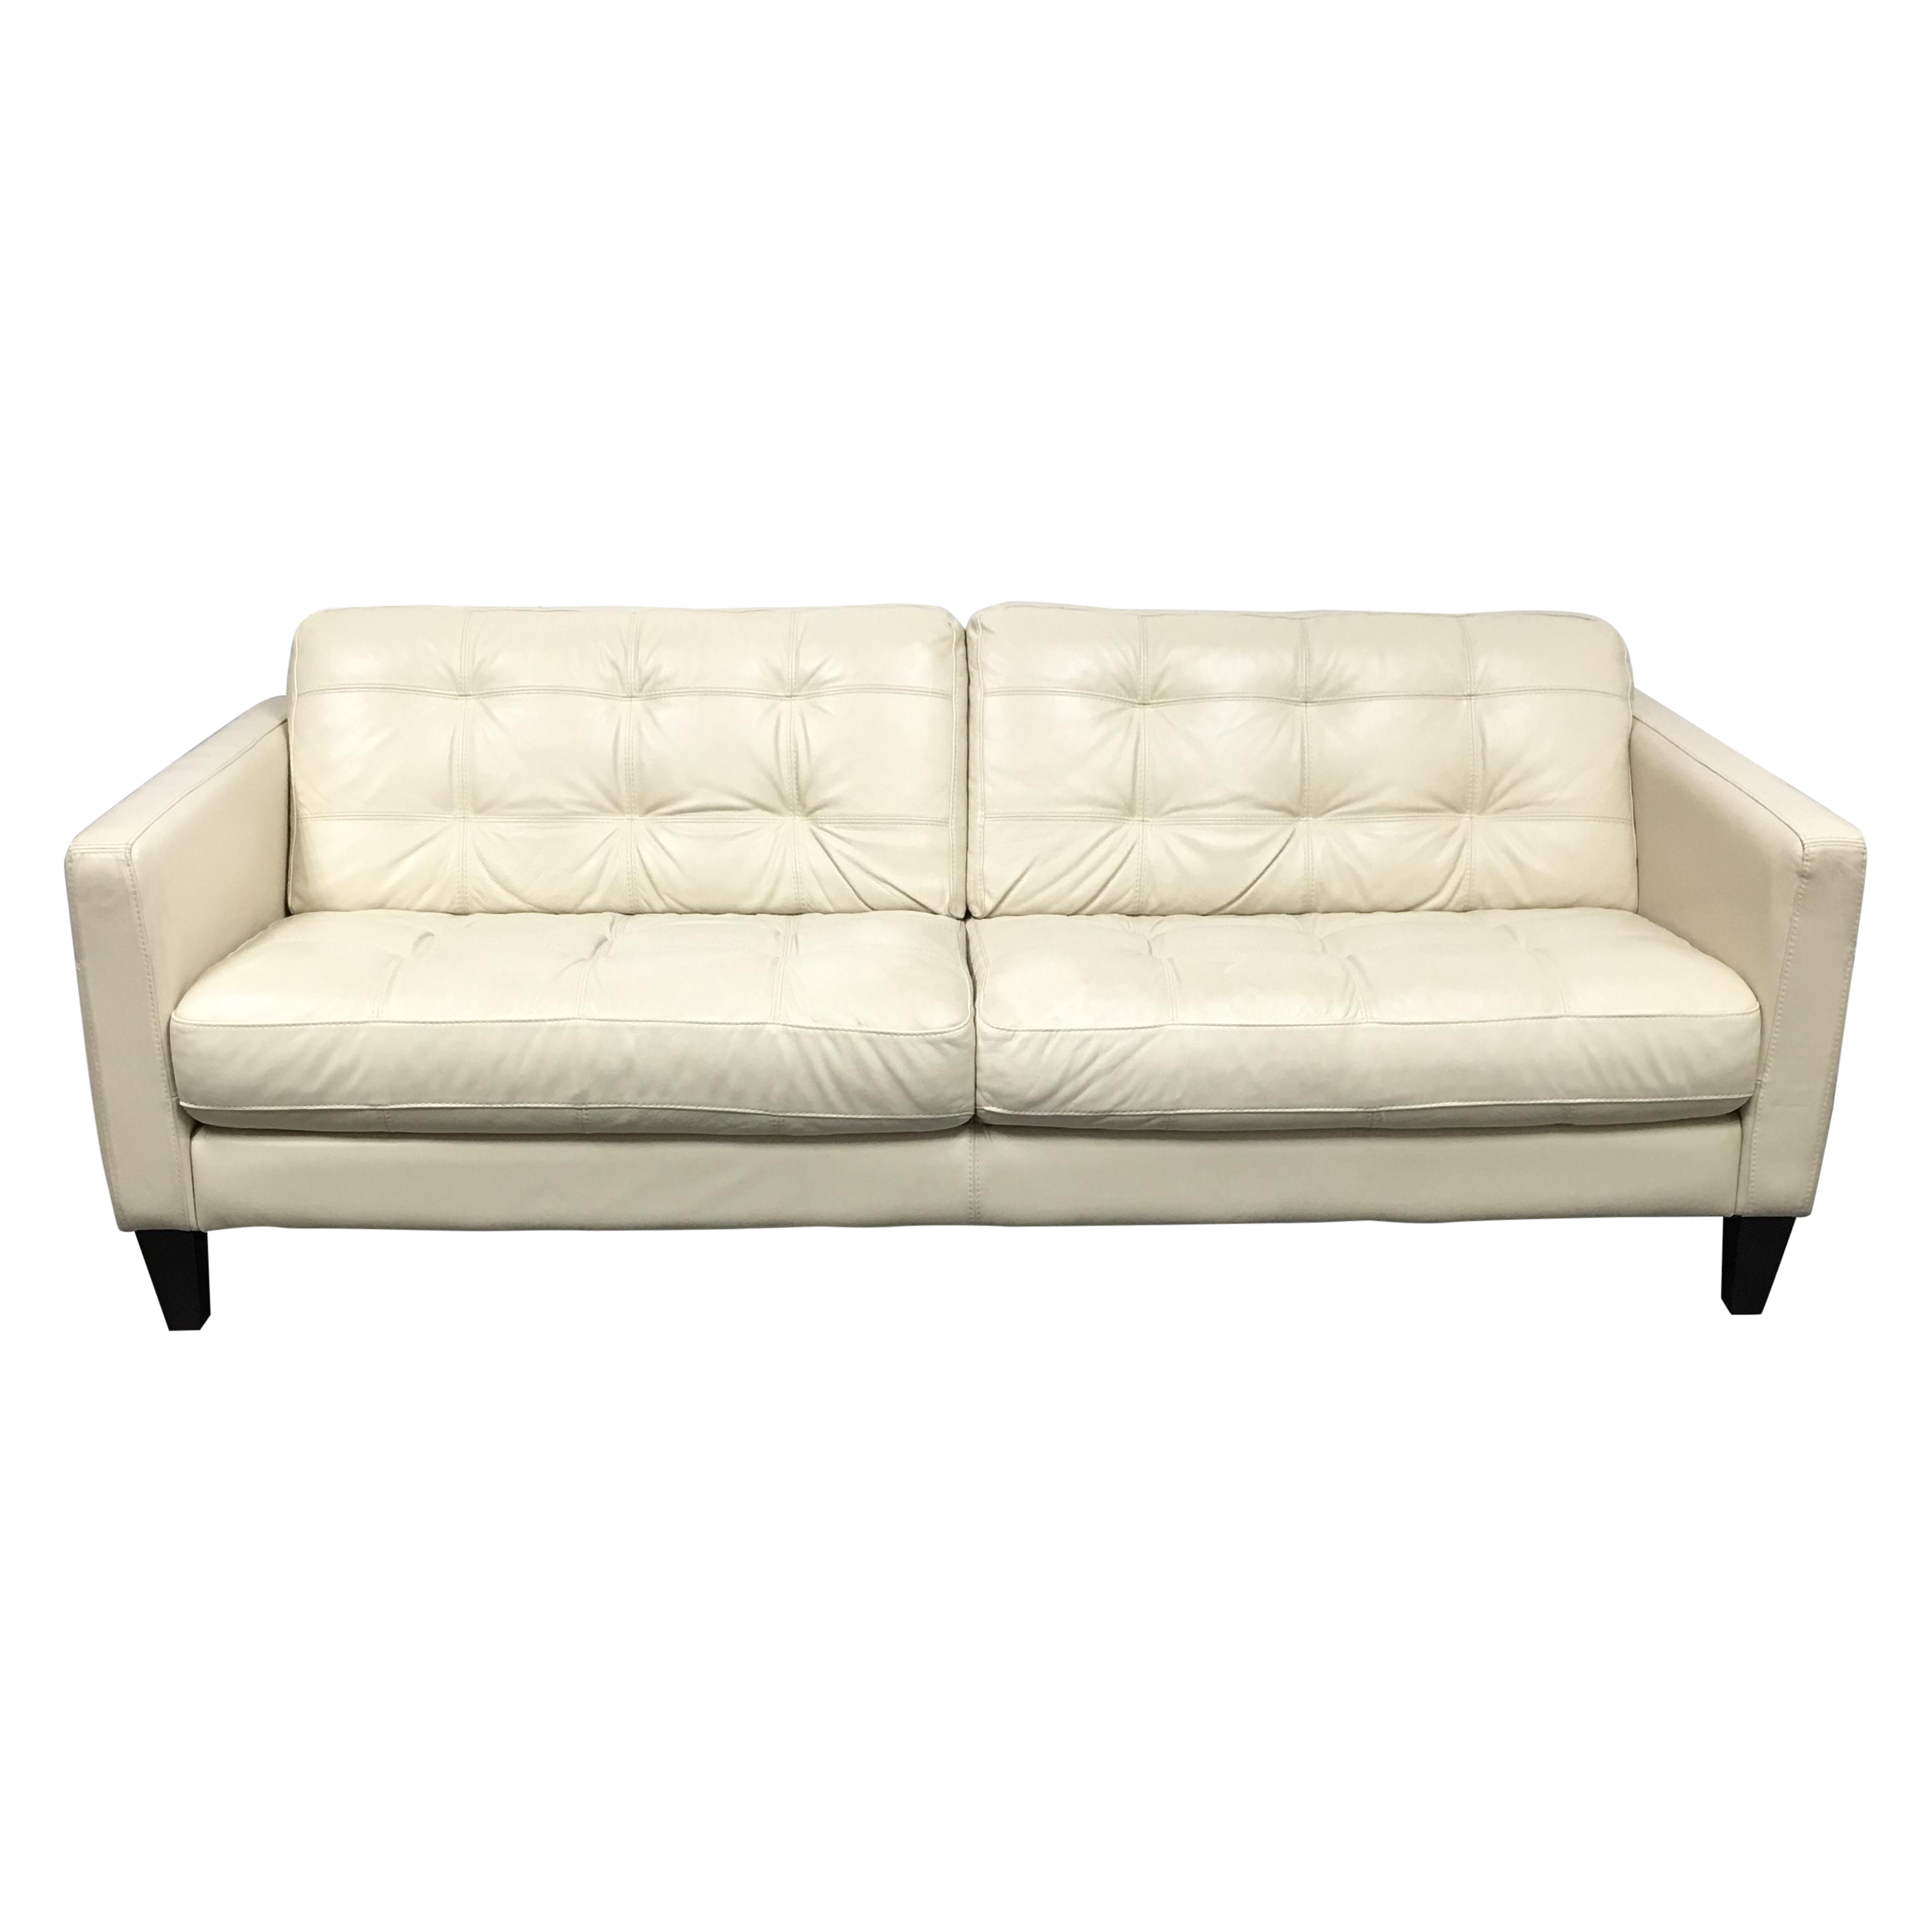 Chateaux D Ax Ivory Italian Leather Sofa